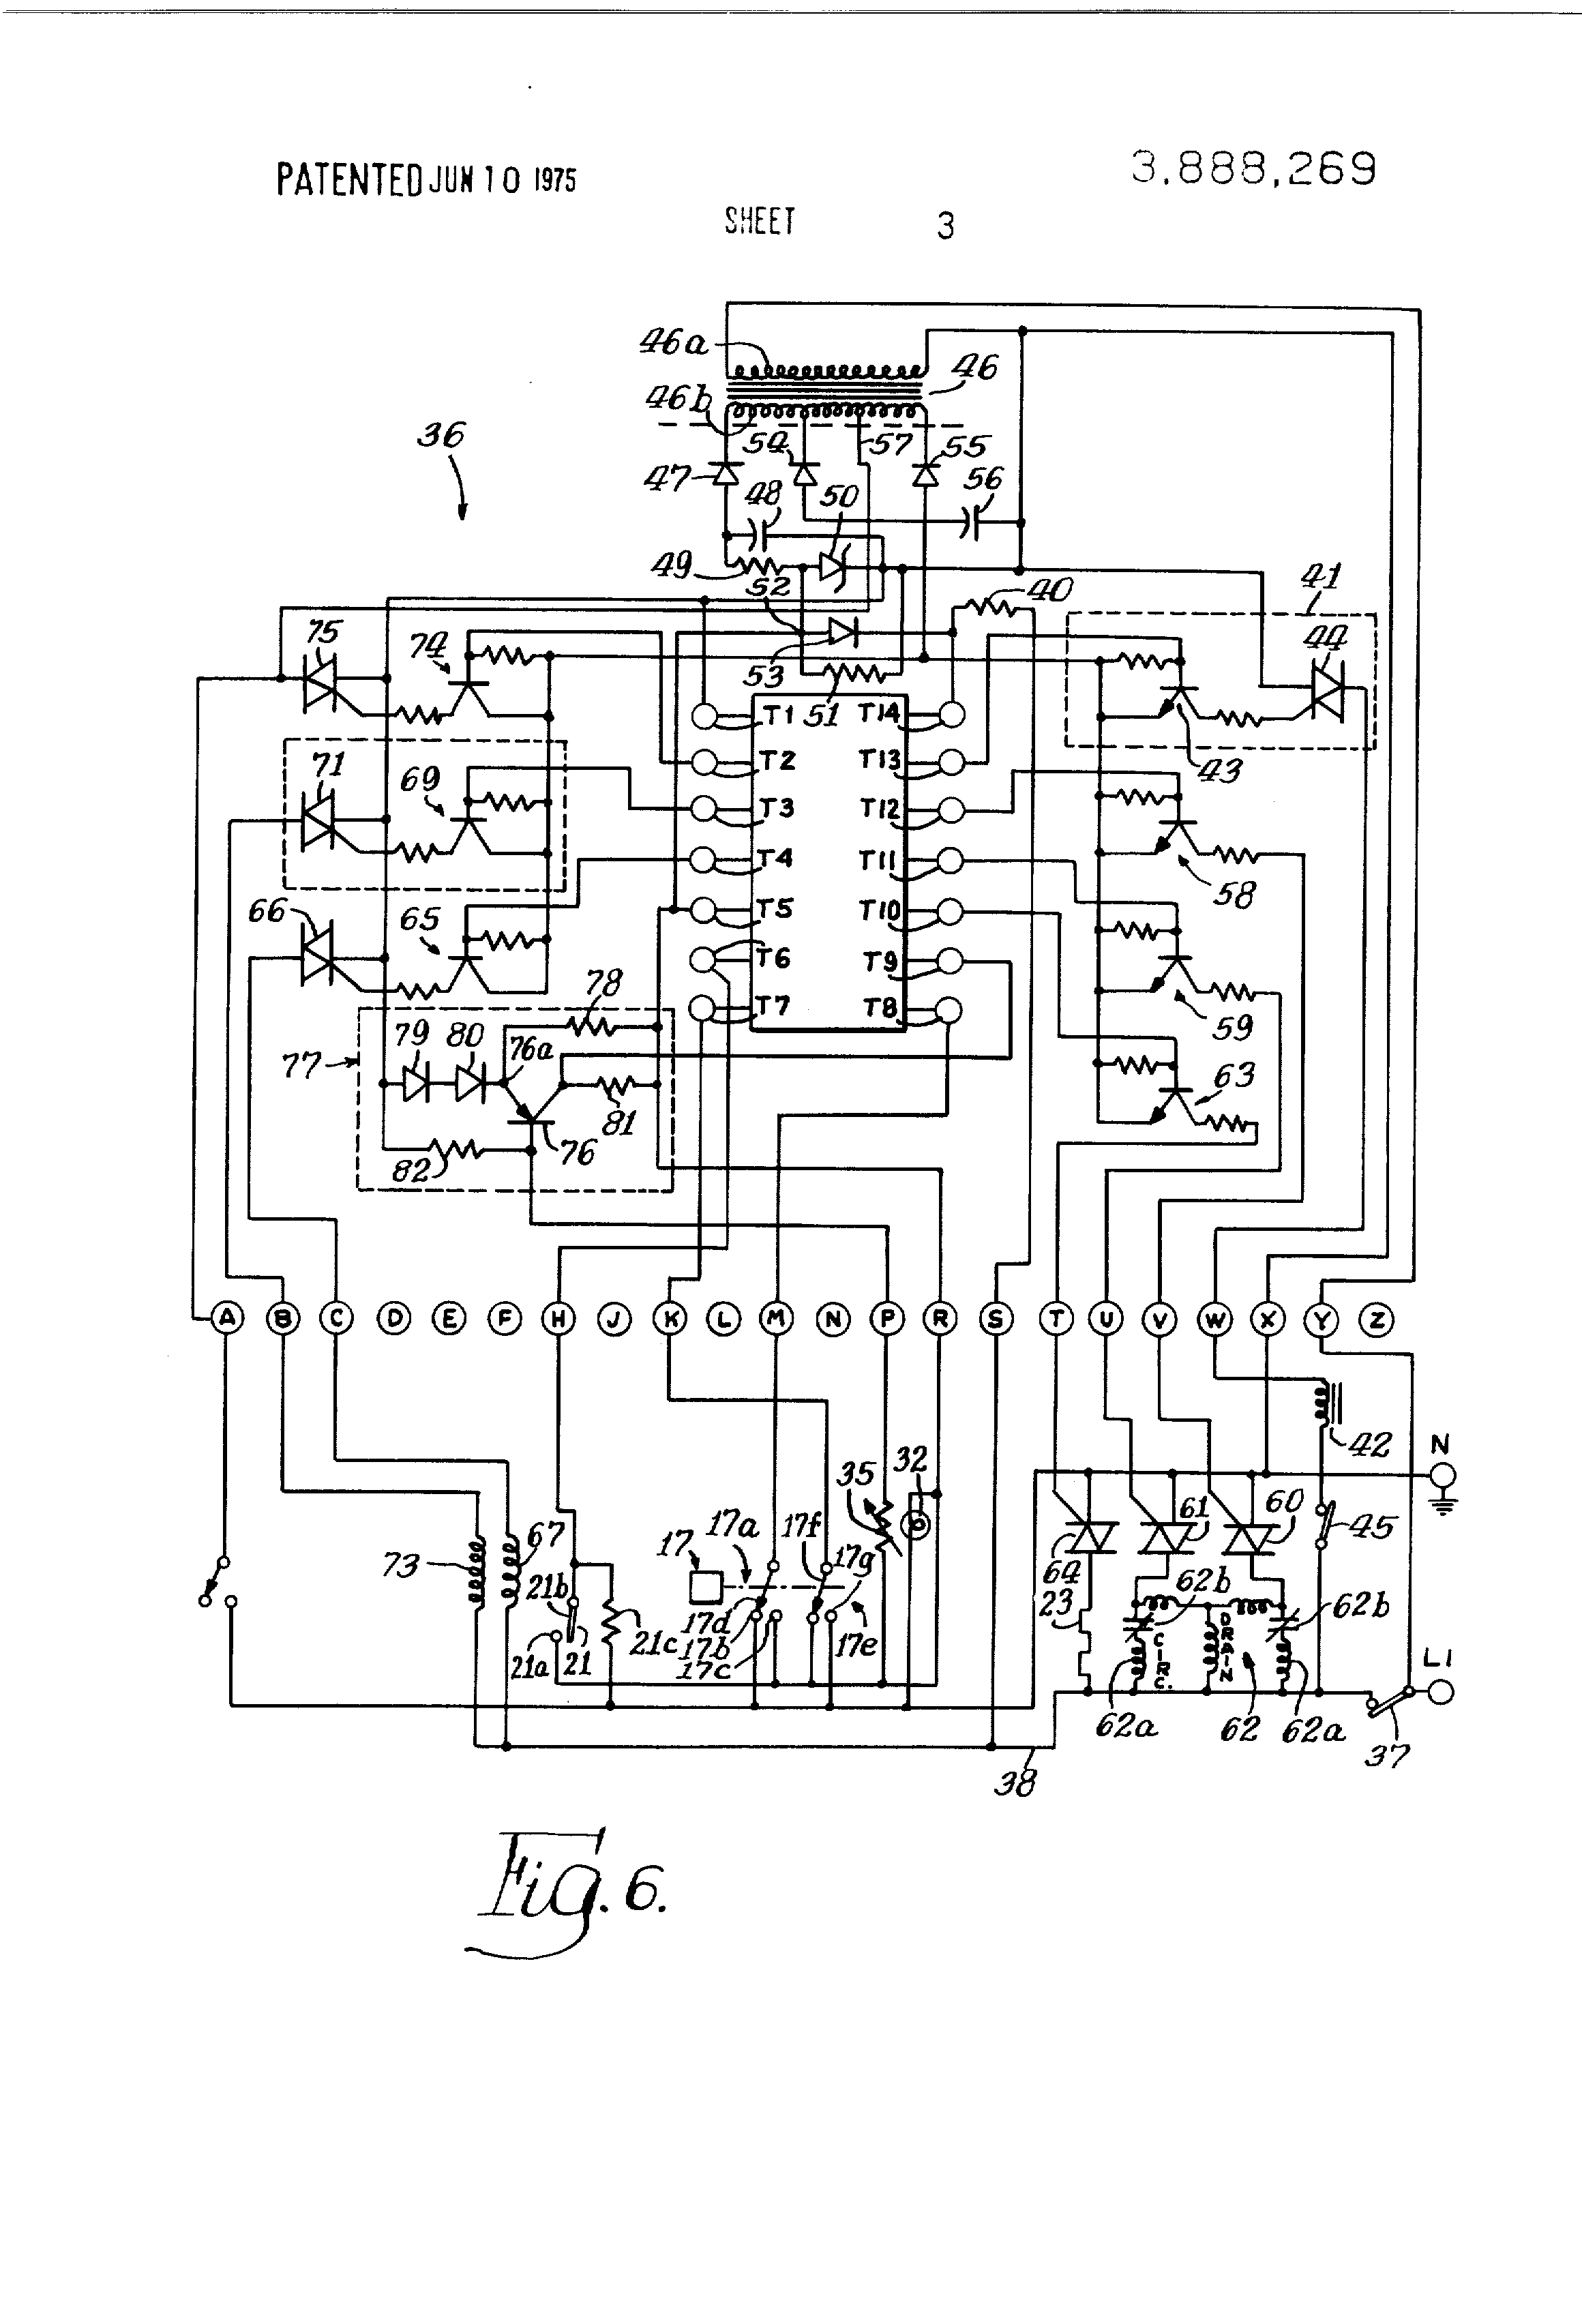 Pke611d17e Wiring Diagram : 25 Wiring Diagram Images